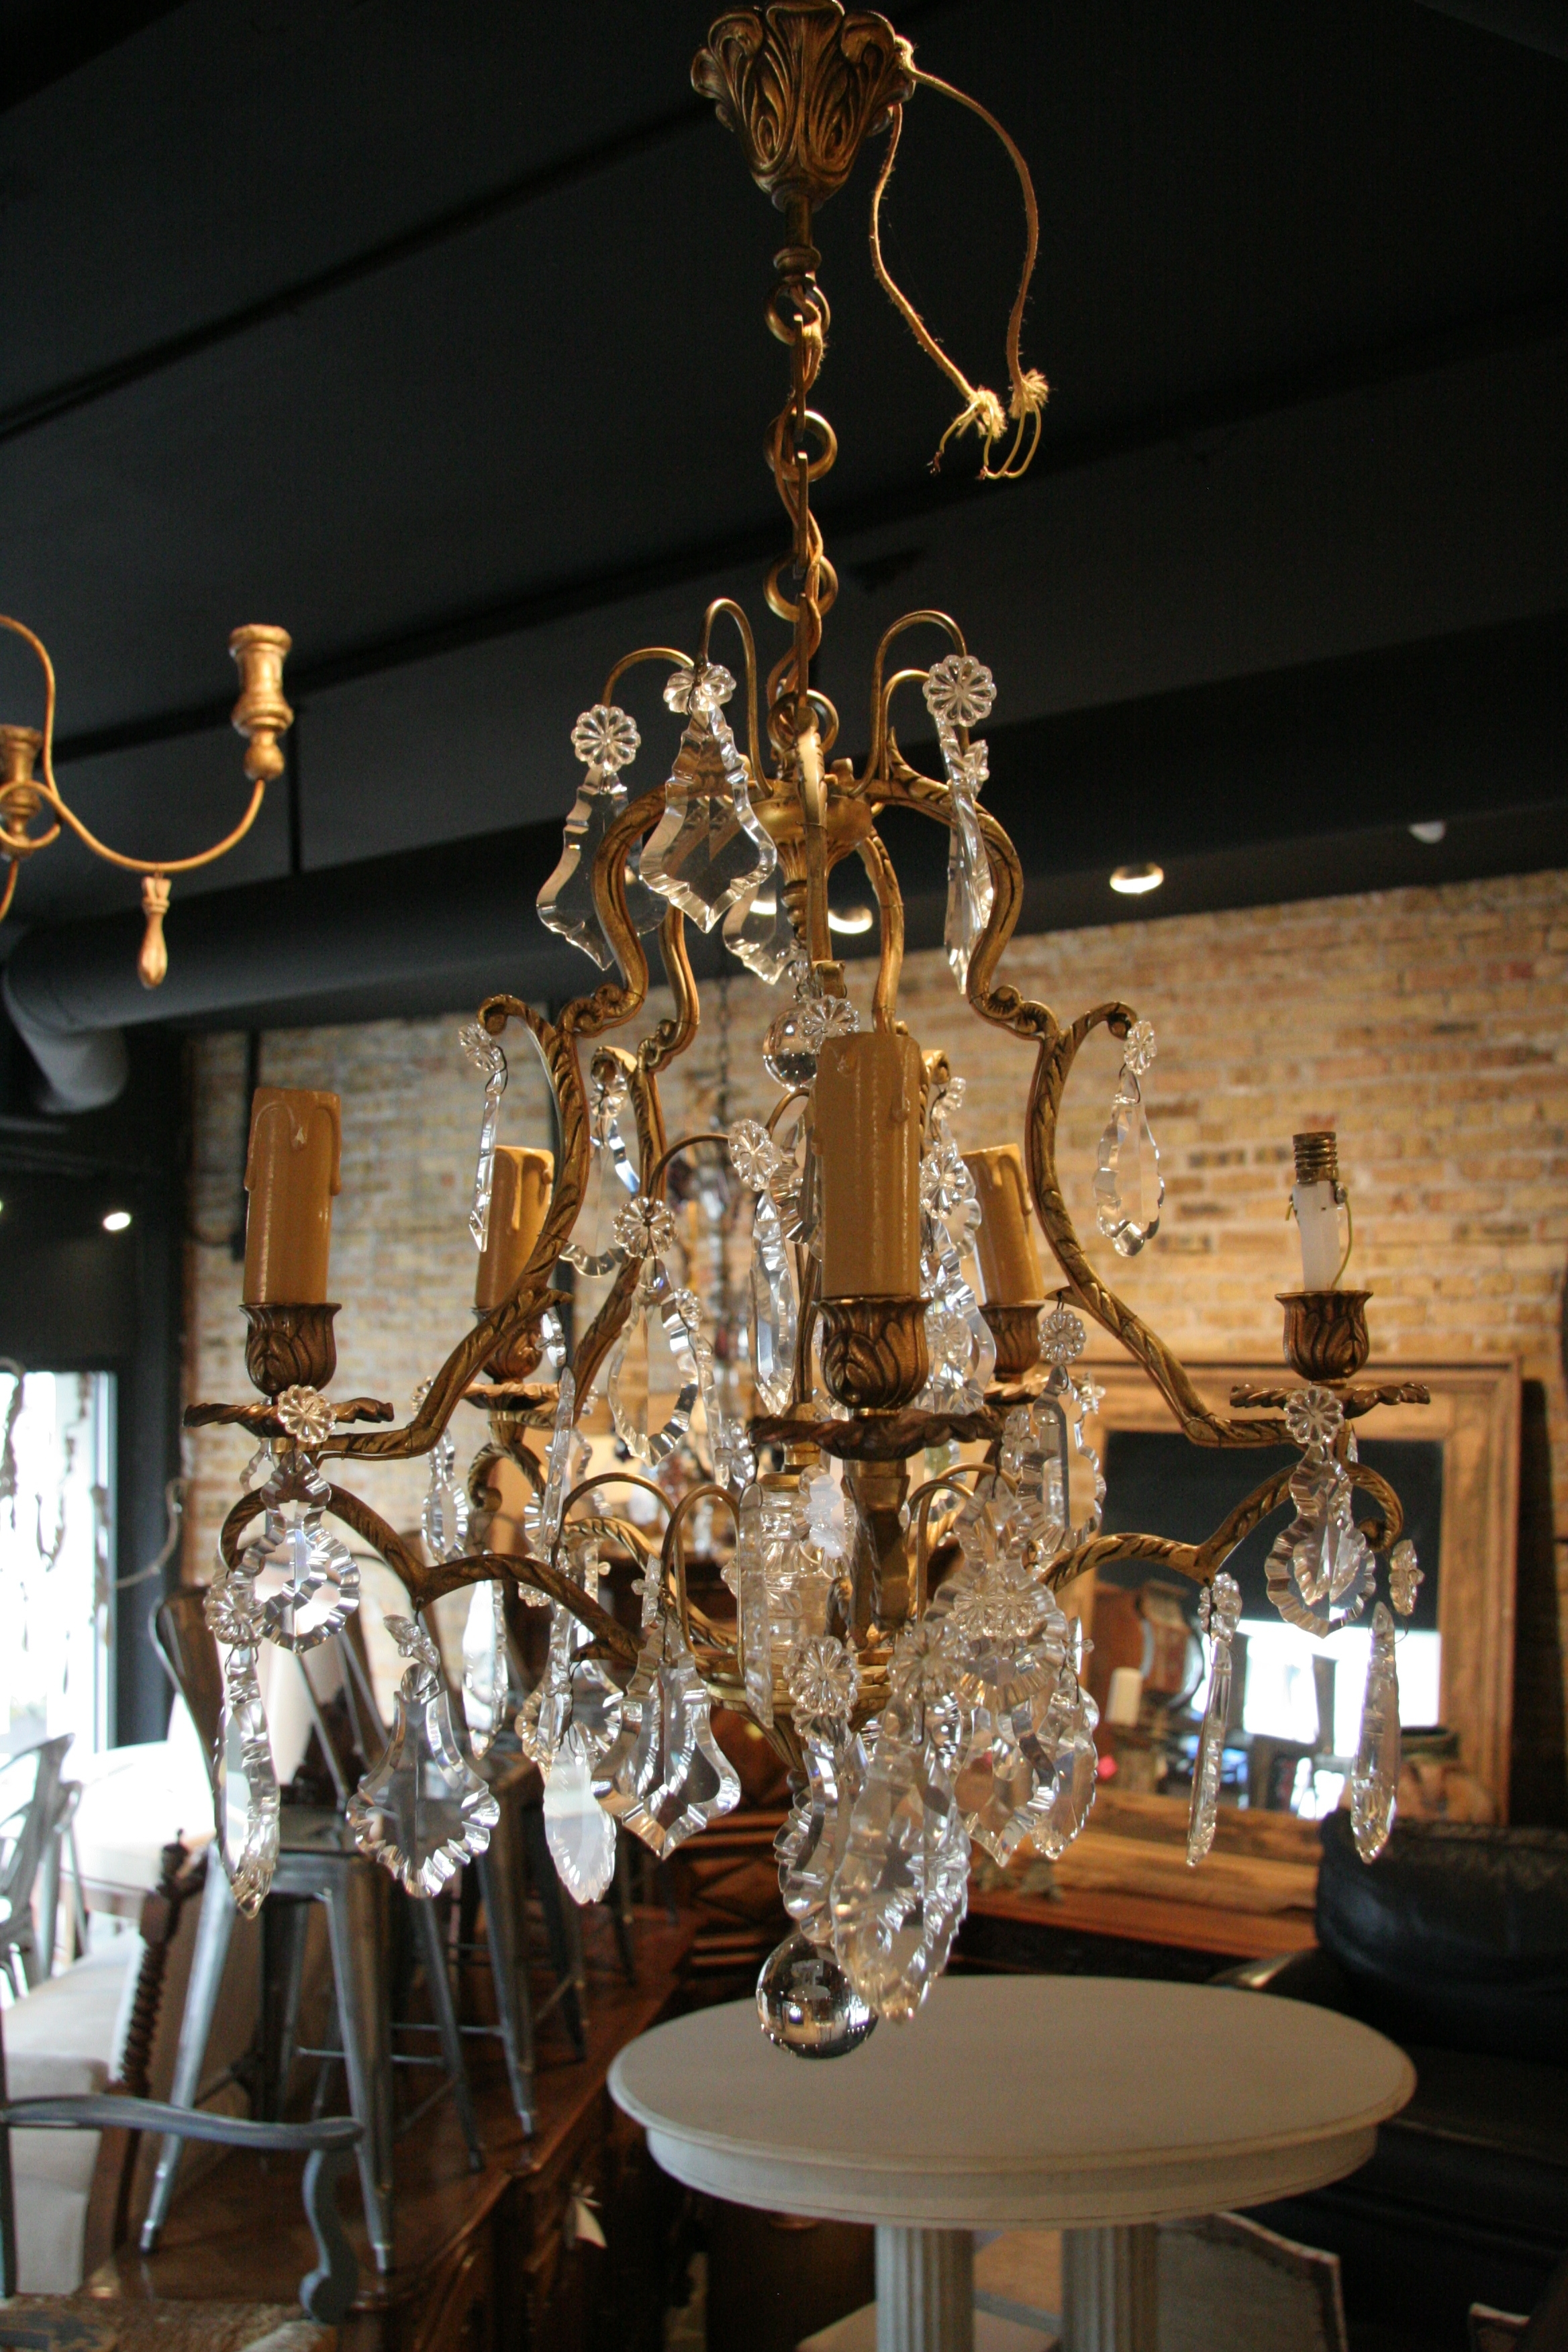 Antique French 5 Light Brass And Crystal Chandelier – Sold – With Well Known Vintage Chandeliers (View 3 of 15)